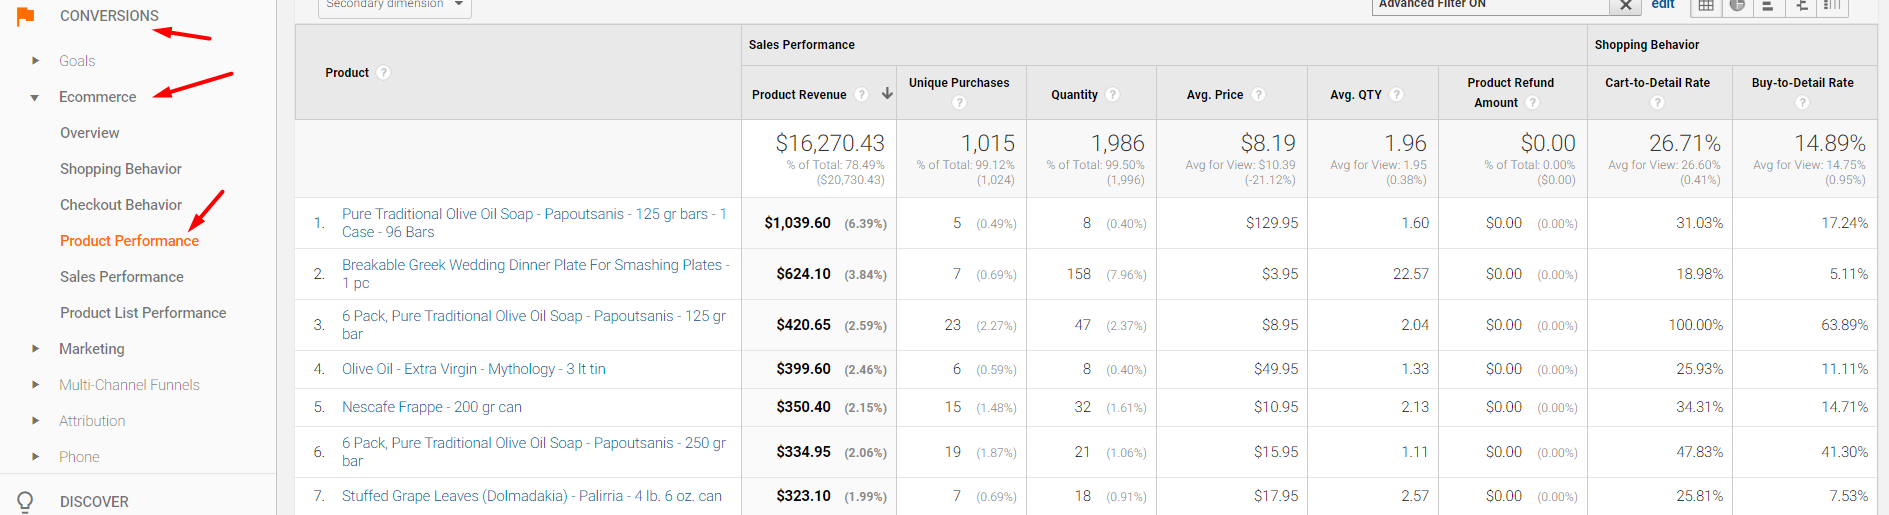 To report sales by product, go to <em>Conversions &gt; Ecommerce &gt; Product Performance</em>.